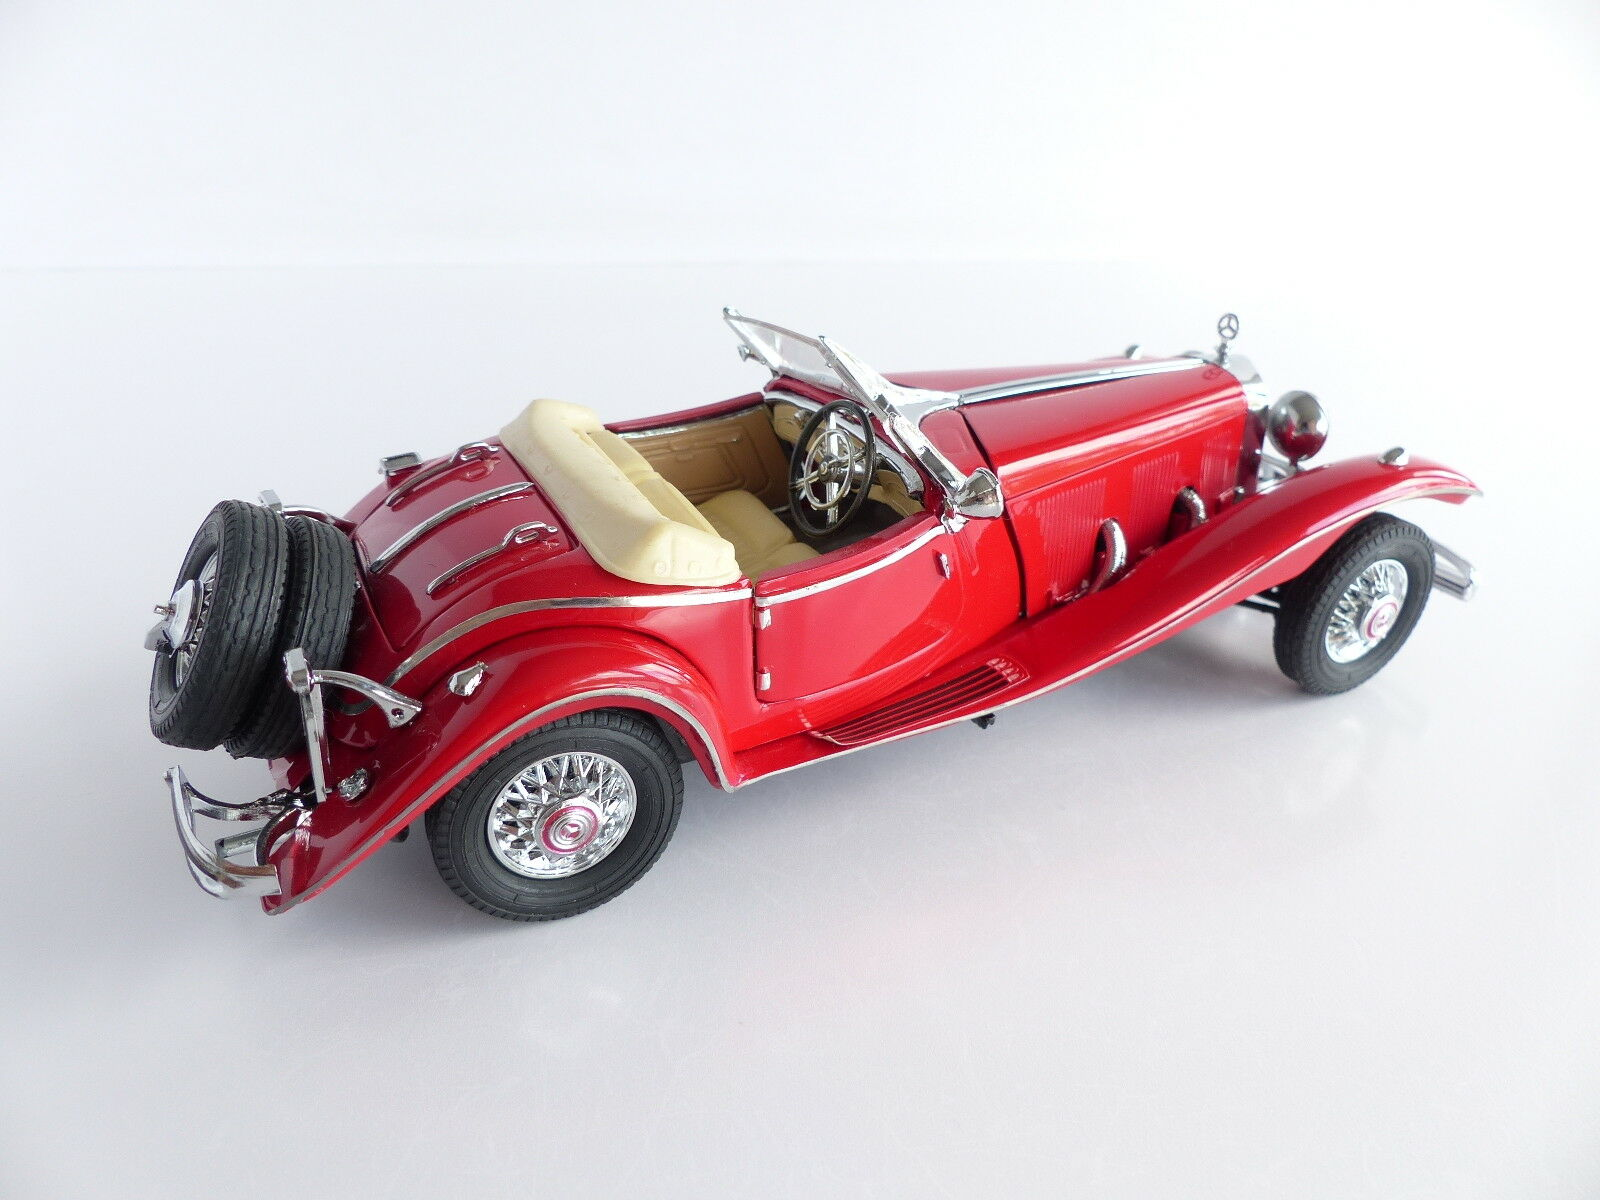 FRANKLIN MINT PRECISION MODELS MODELS MODELS VOITURE MERCEDES BENZ 500K 1935 ECHELLE 1 24 6477fa